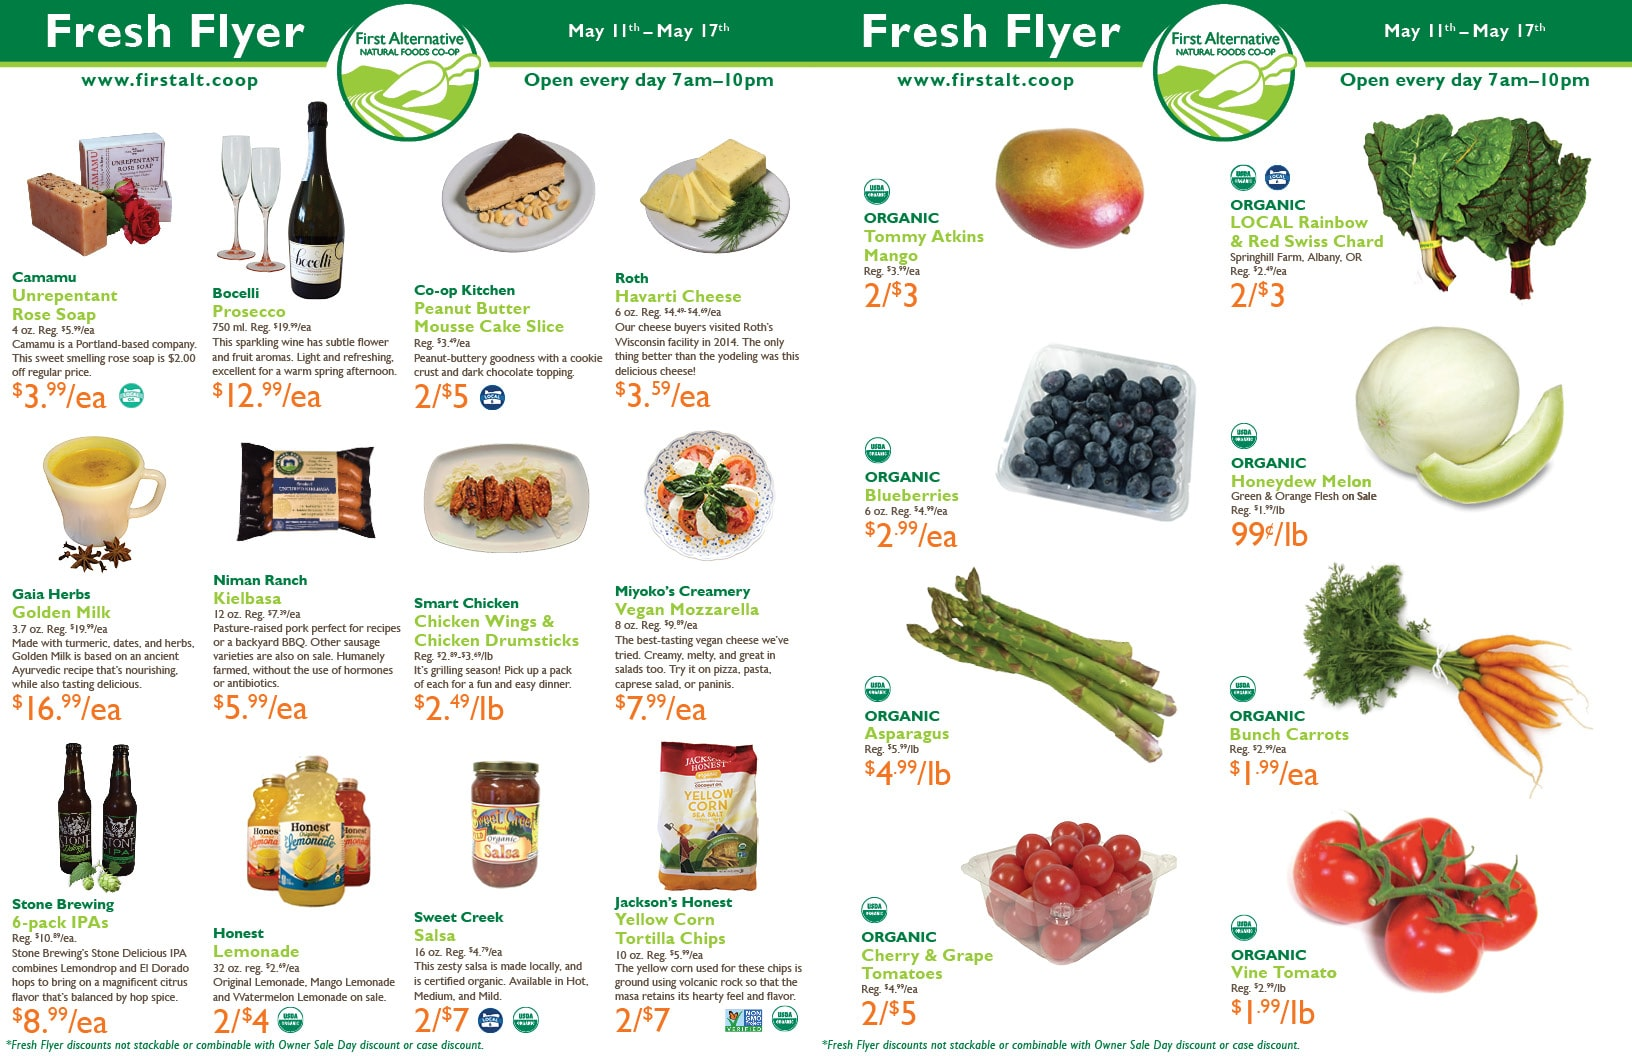 First Alternative Co-op Fresh Flyer May 11-17